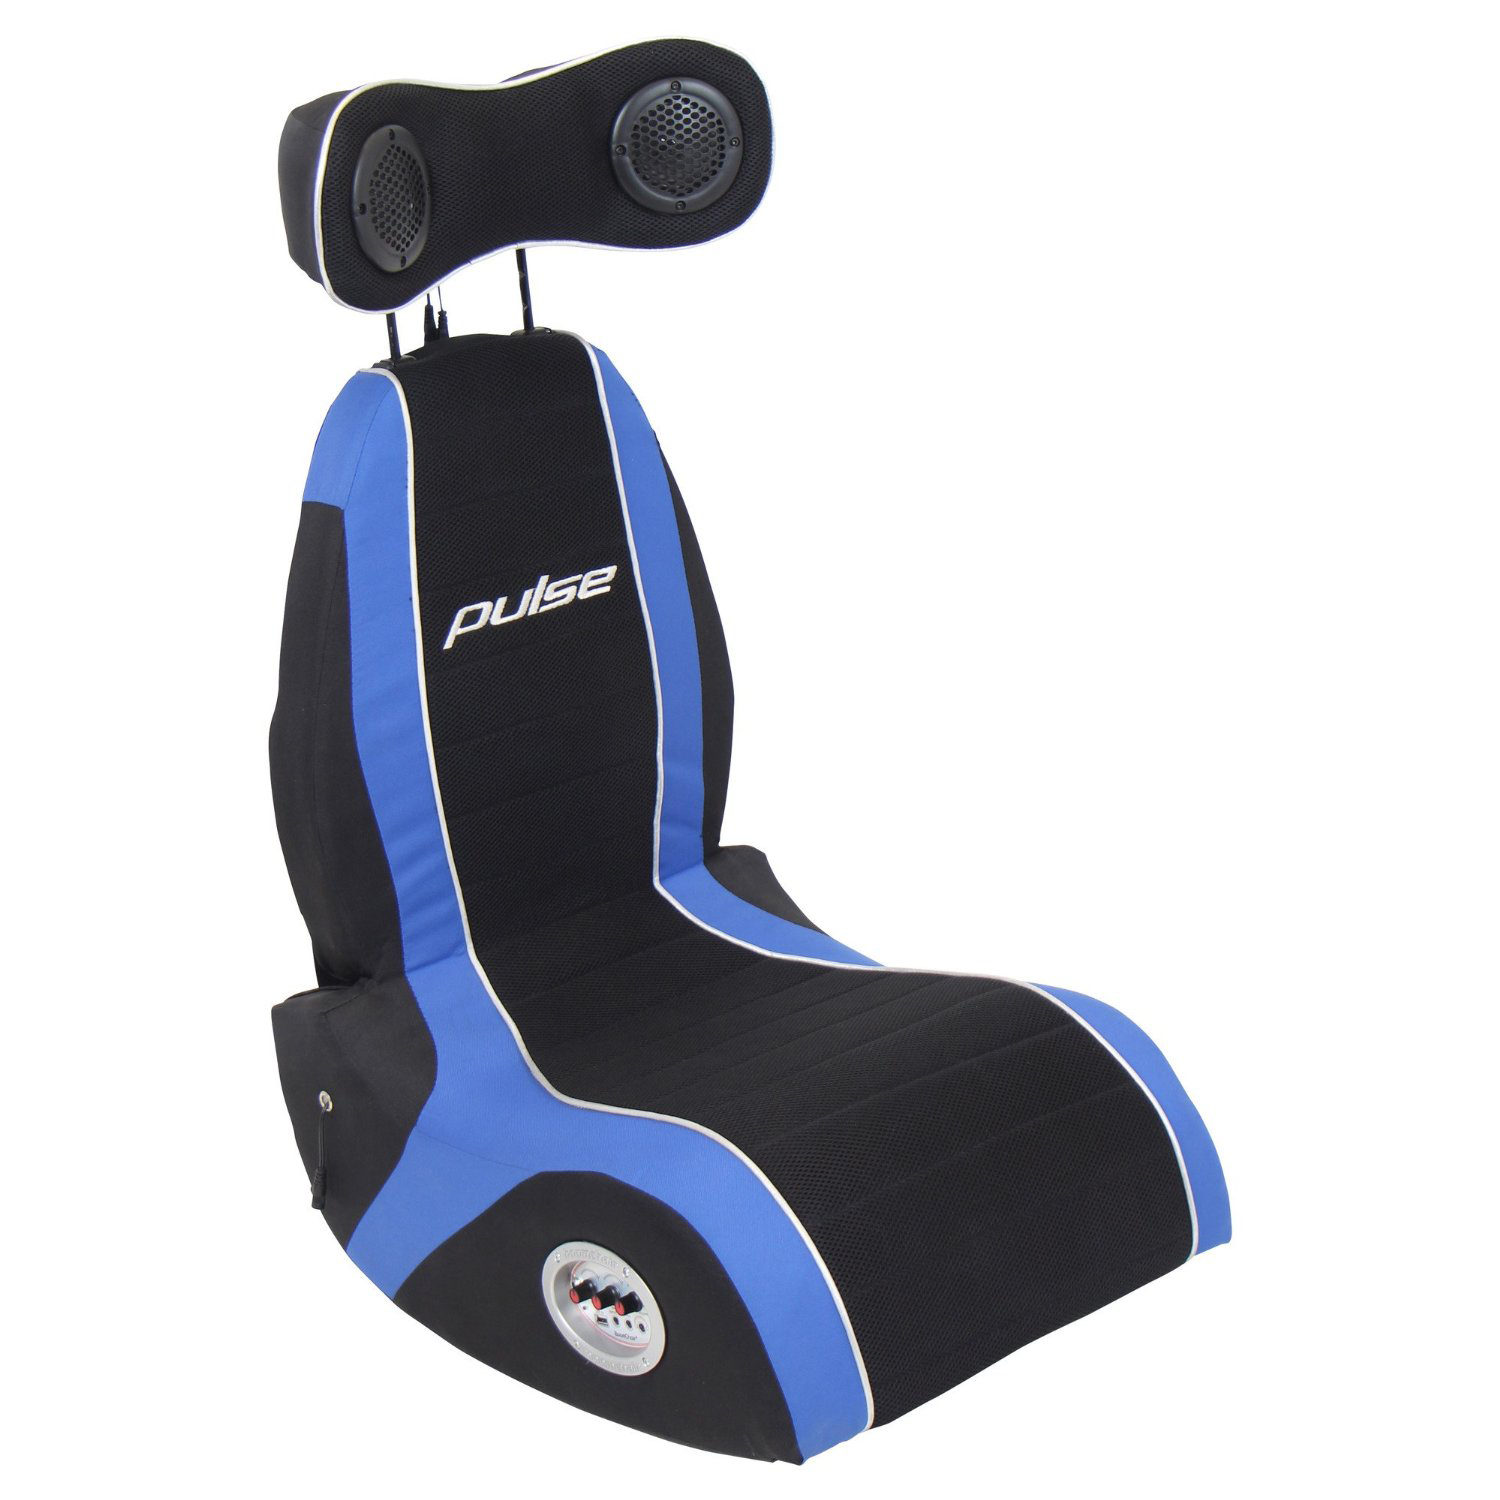 Game chairs for xbox 360 - Boom Pulse Bluetooth Gaming Chair For Playstation Ps3 Ps4 Xbox Wii Mac Ipod